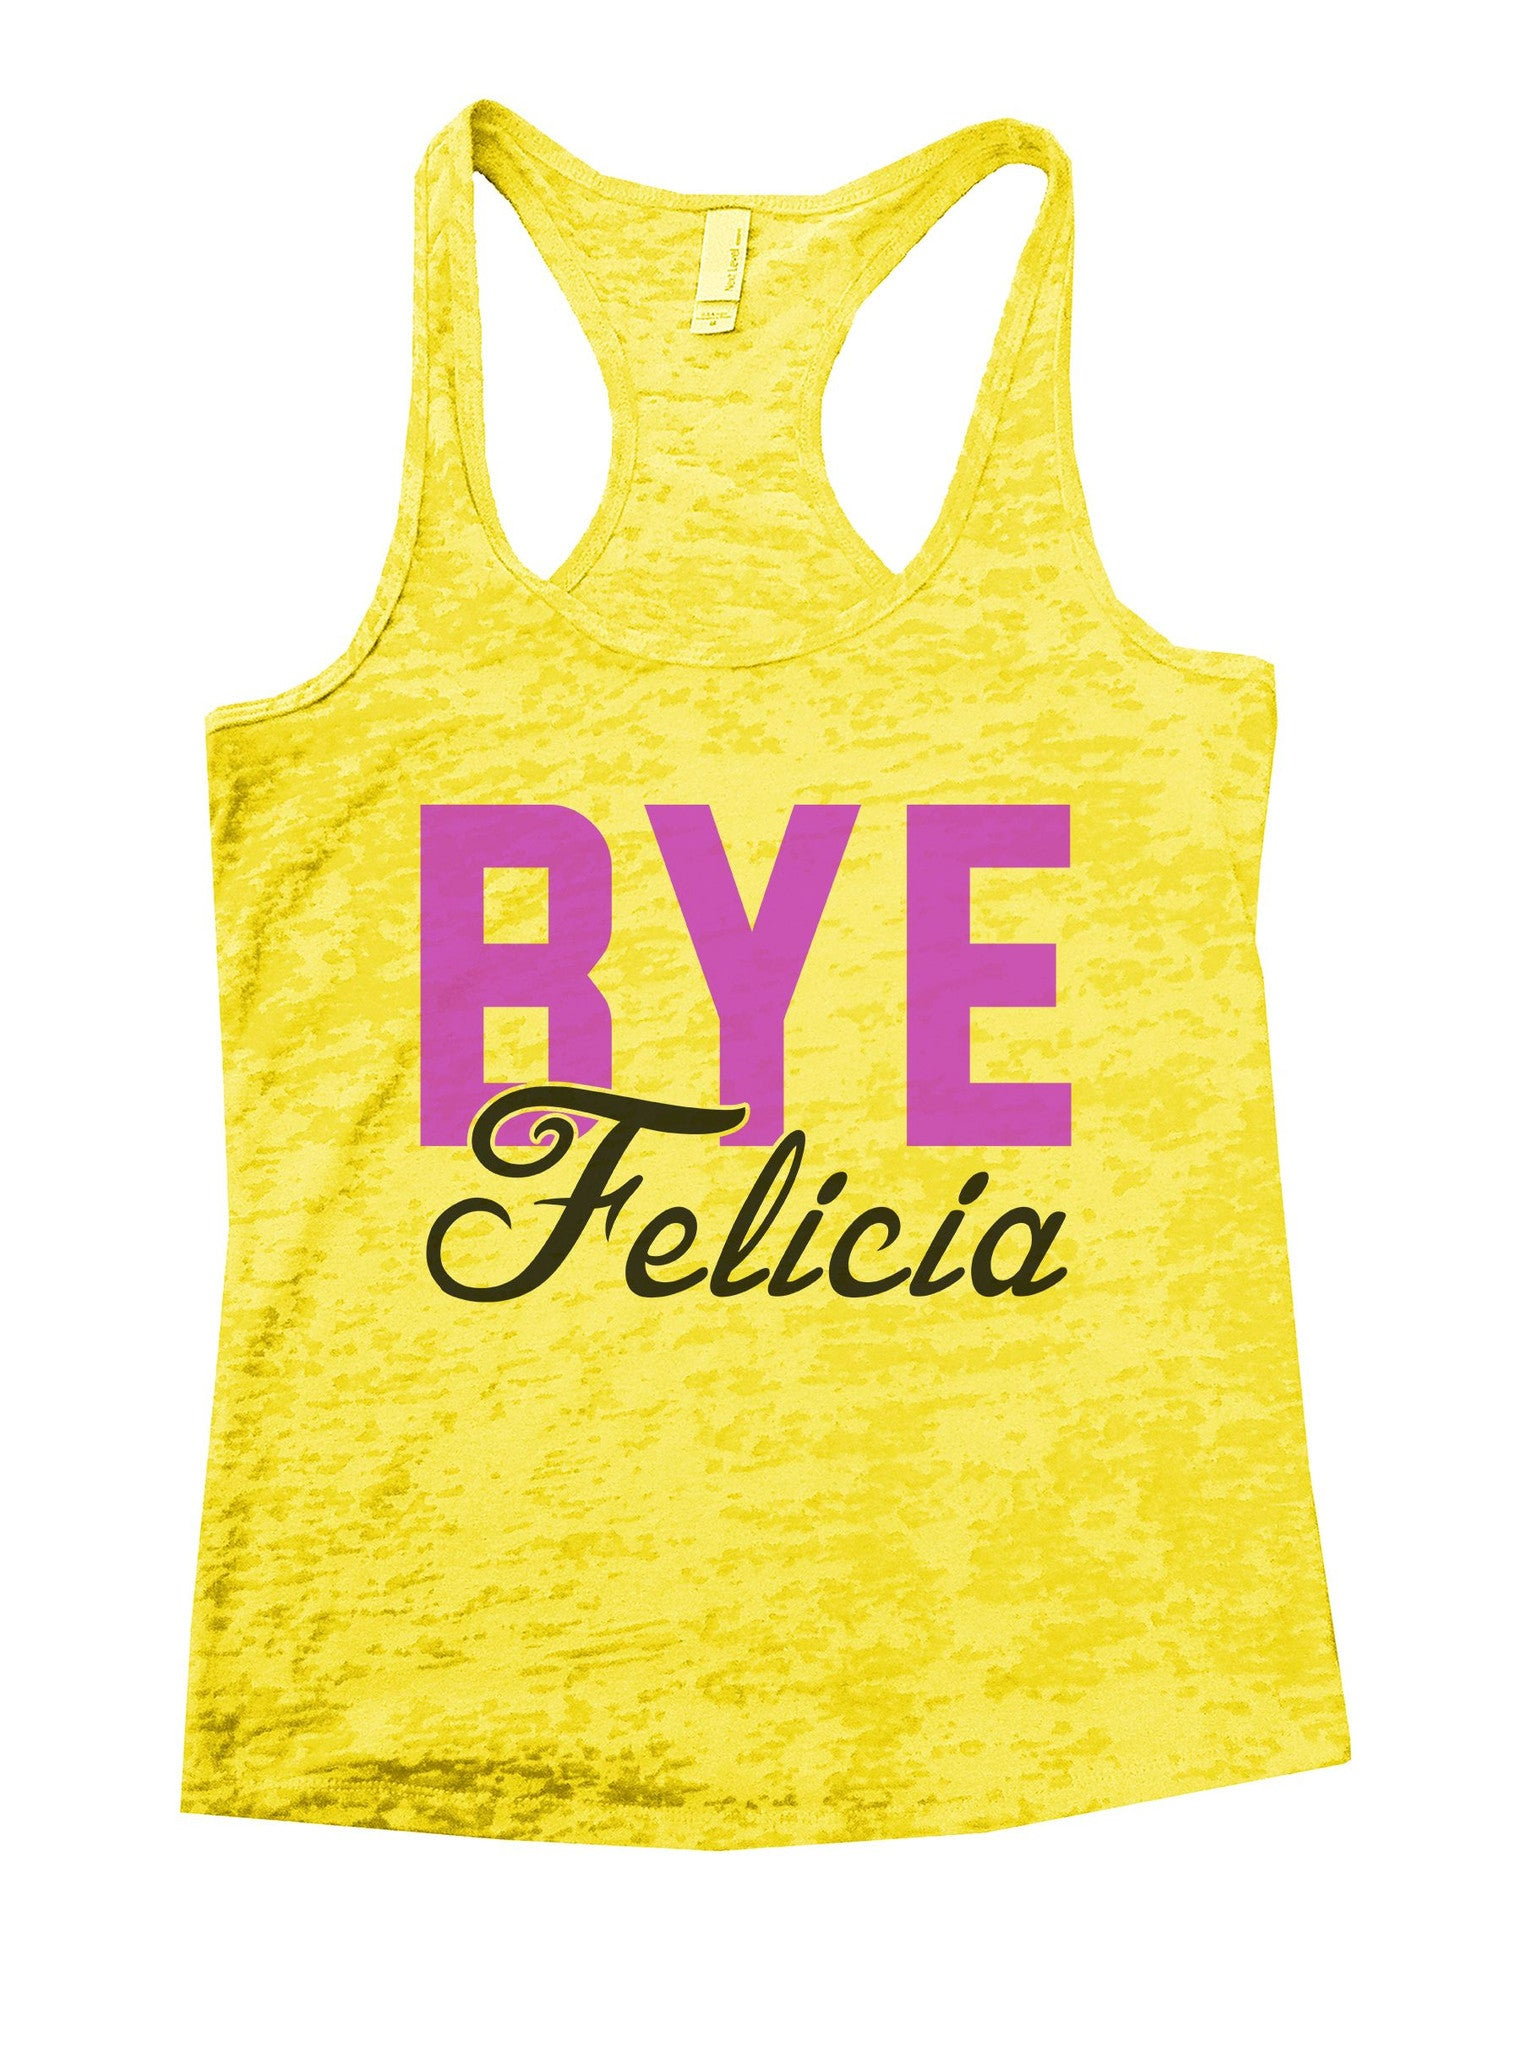 Bye Felicia Burnout Tank Top By BurnoutTankTops.com - 1092 - Funny Shirts Tank Tops Burnouts and Triblends  - 7